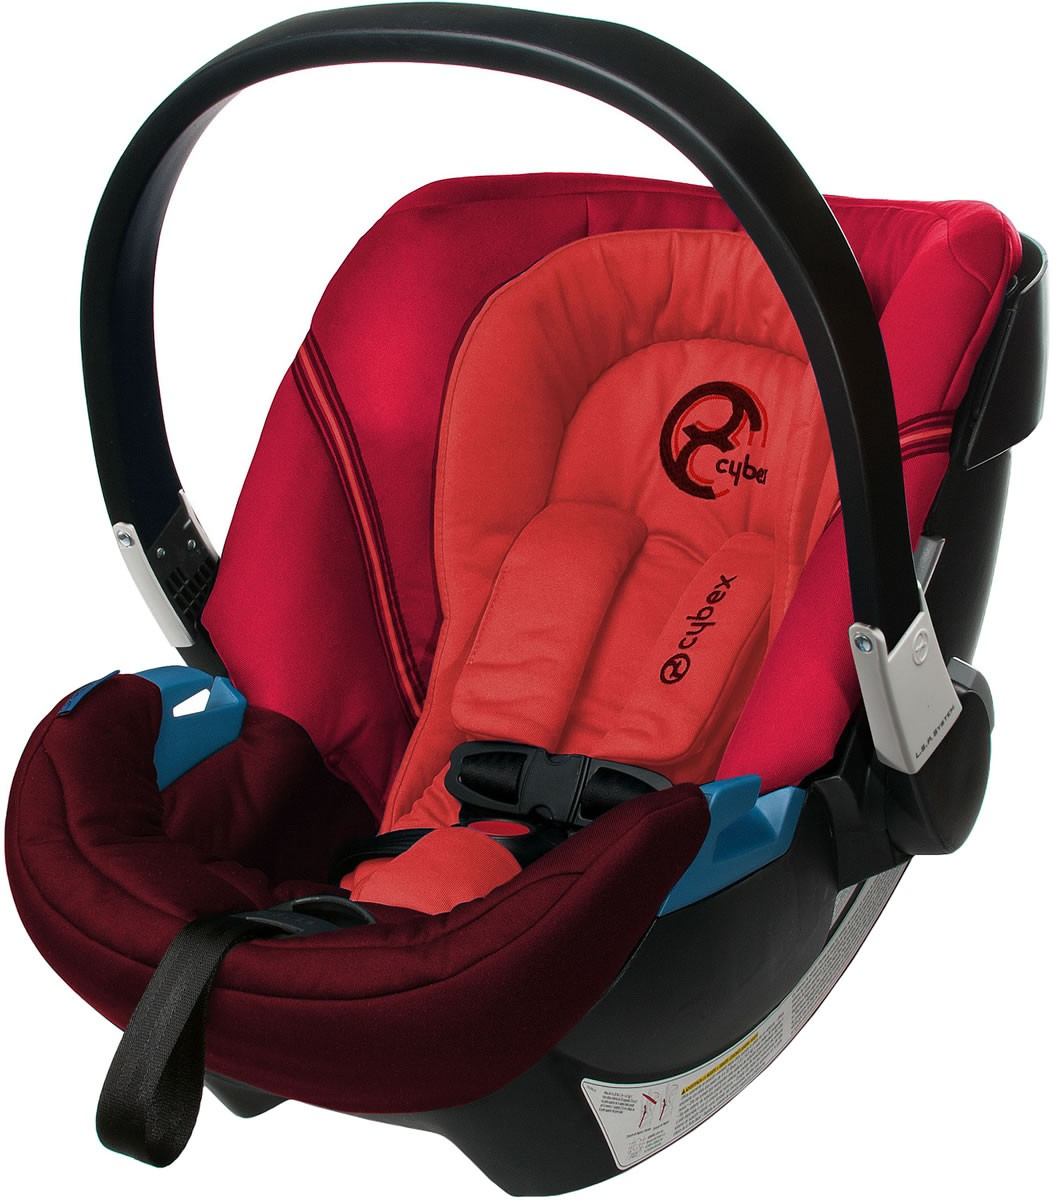 2014 cybex aton infant car seat poppy red car seats baby gear. Black Bedroom Furniture Sets. Home Design Ideas